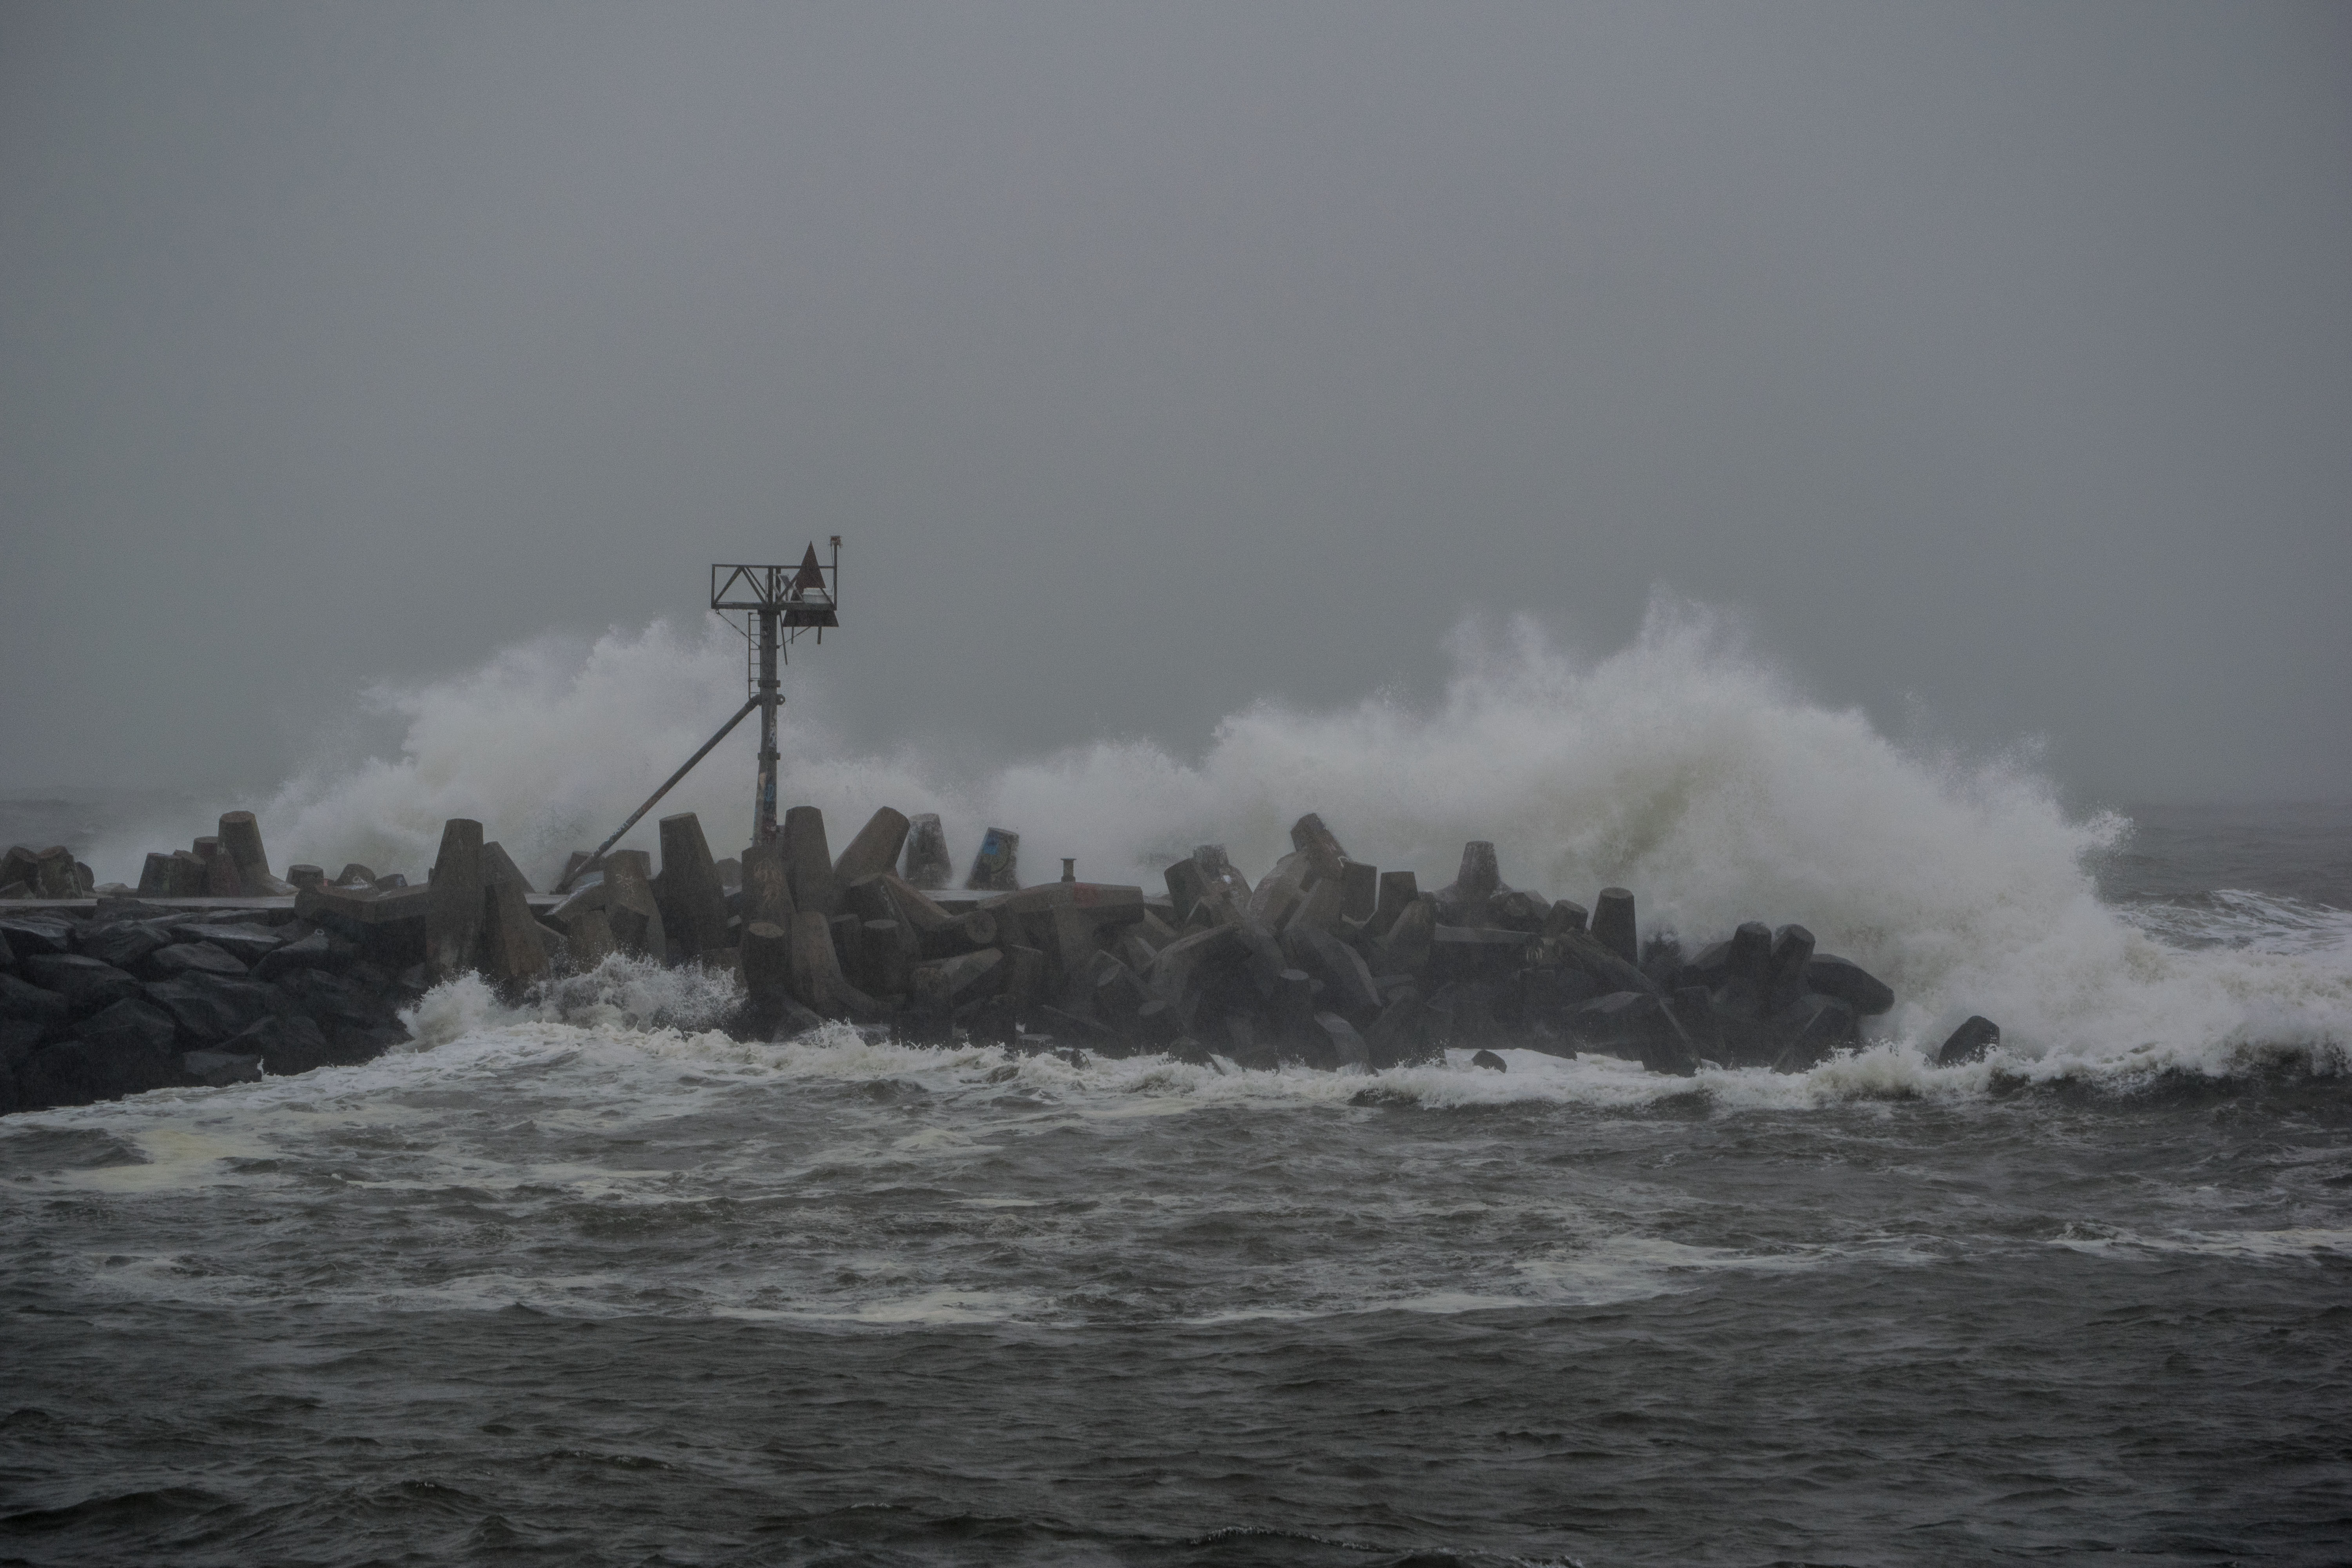 Heavy surf during the Sept. 10, 2018 storm. (Photo: Daniel Nee)